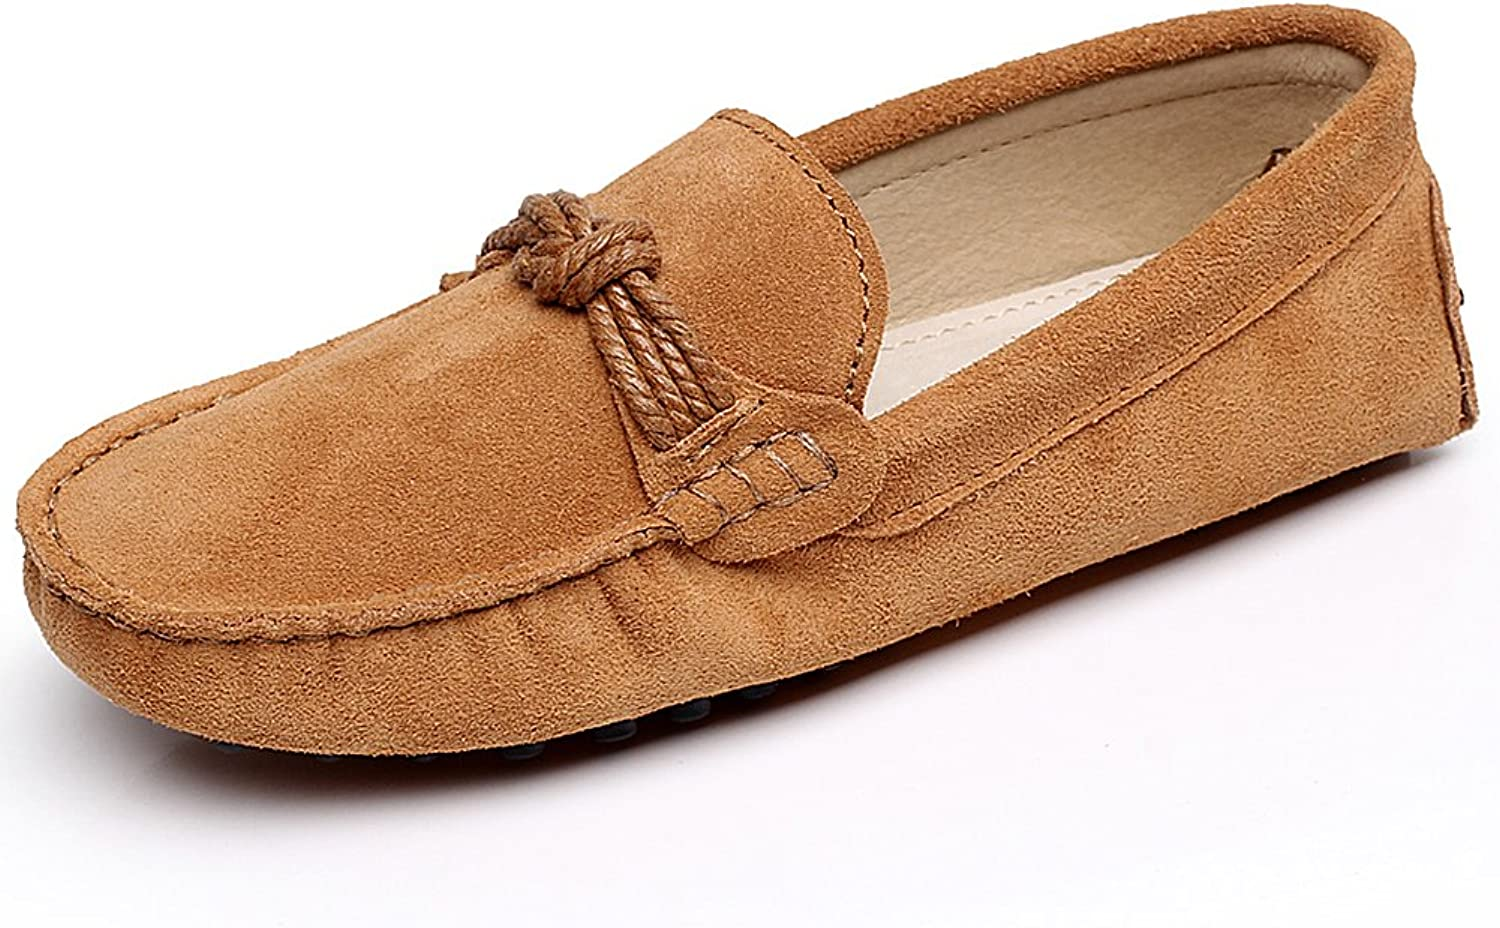 Shenn Women's Office & Career Stylish Suede Loafers shoes